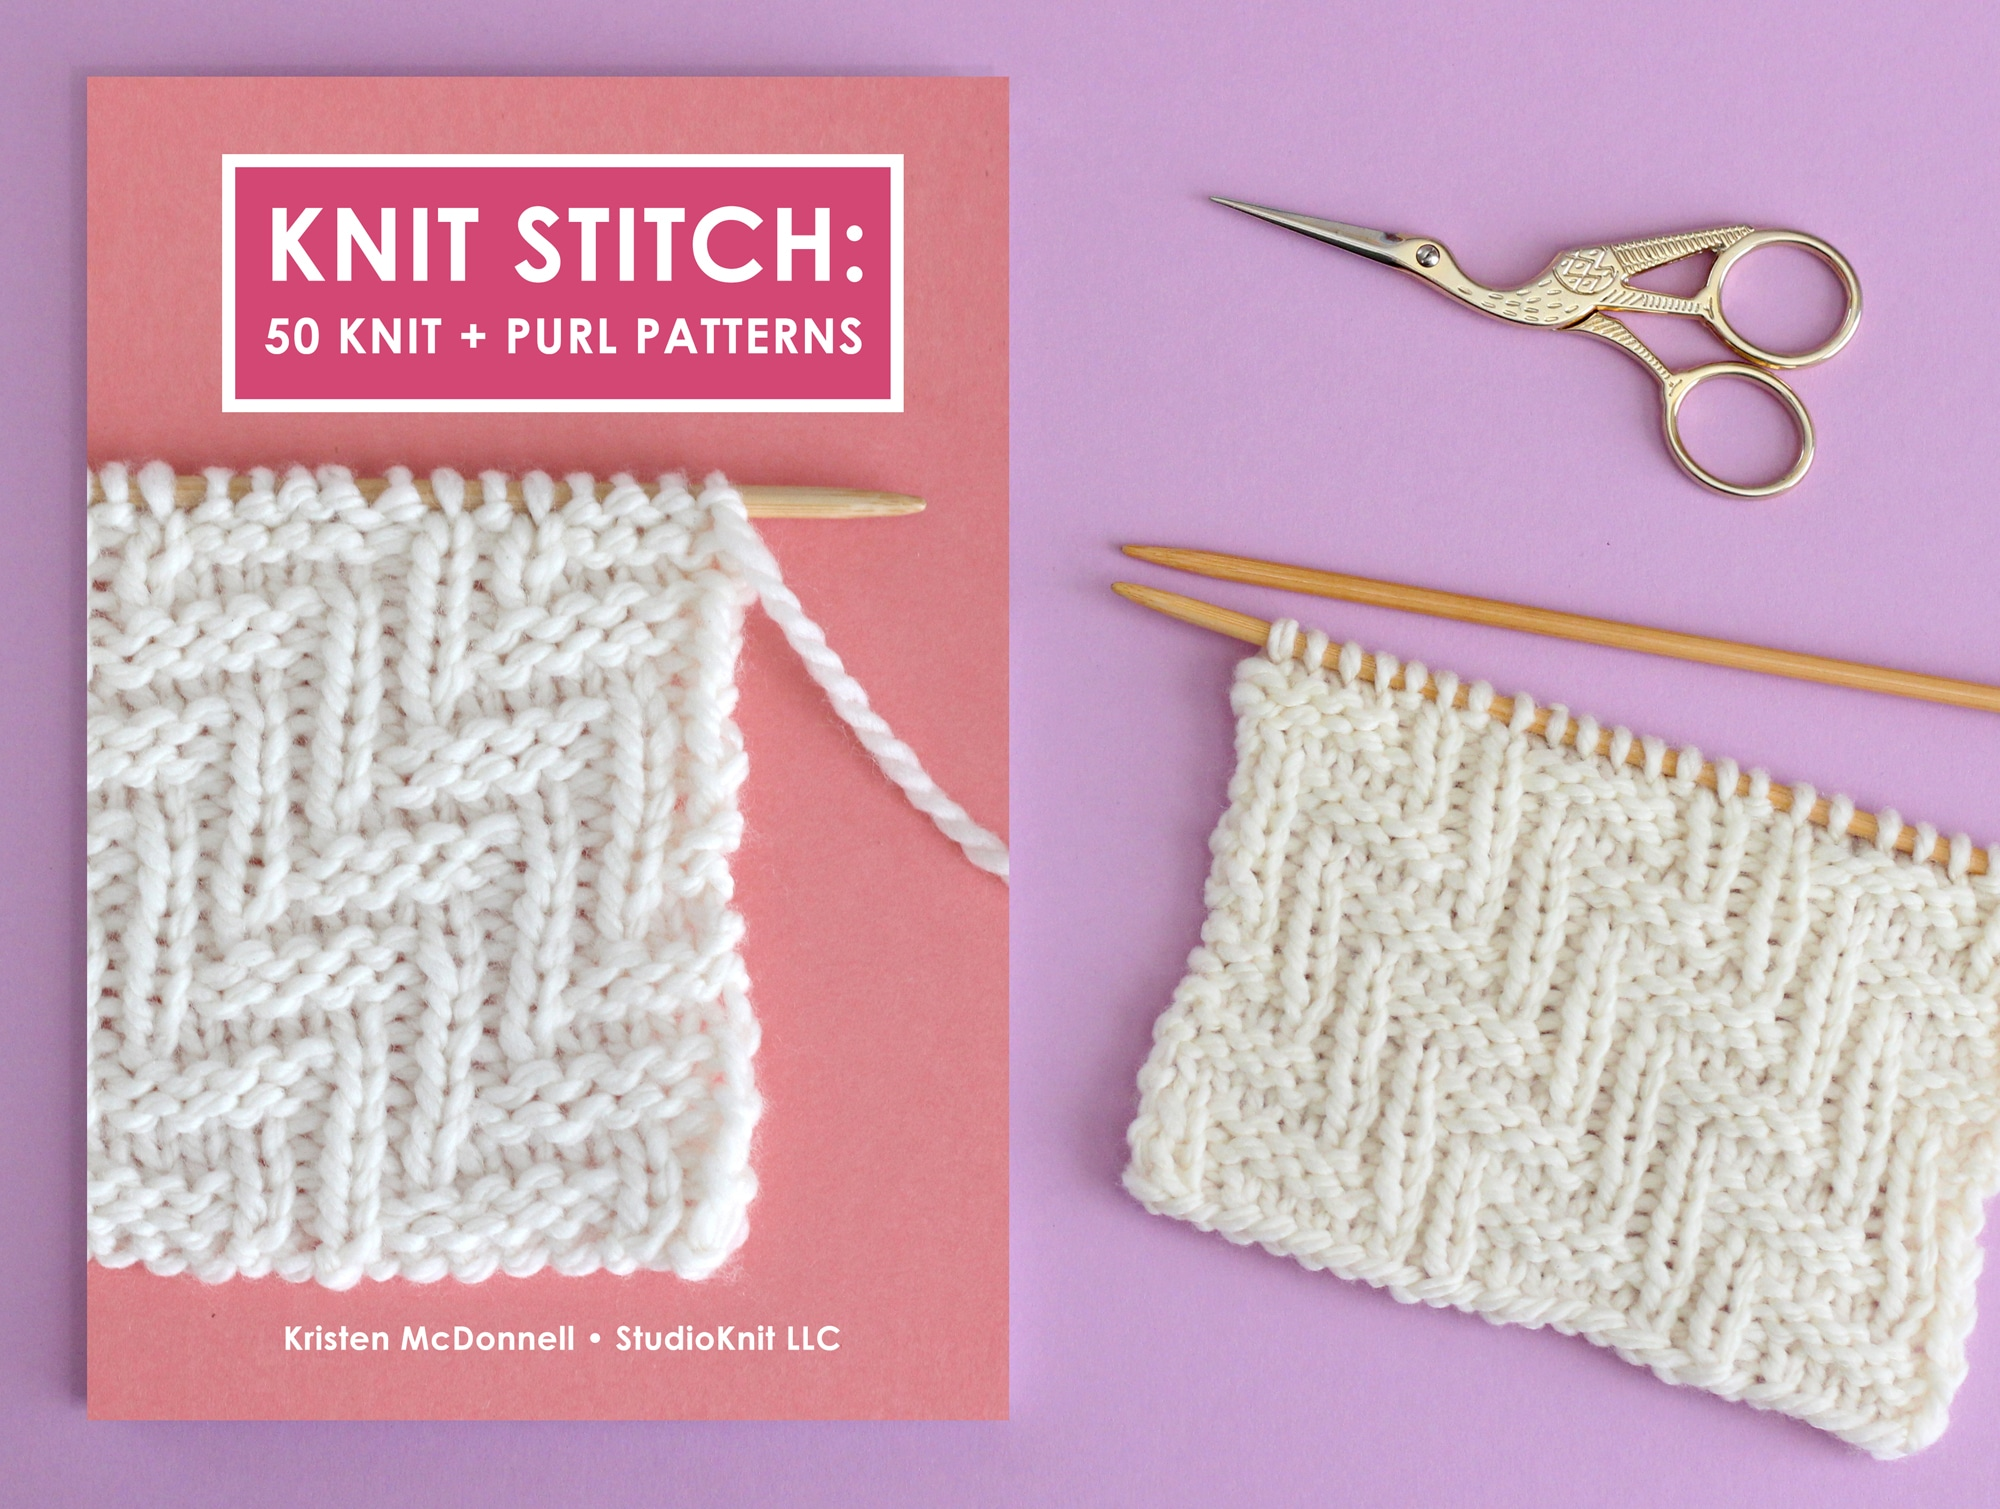 KNIT STITCH: 50 Knit + Purl Patterns by Studio Knit's Kristen McDonnell